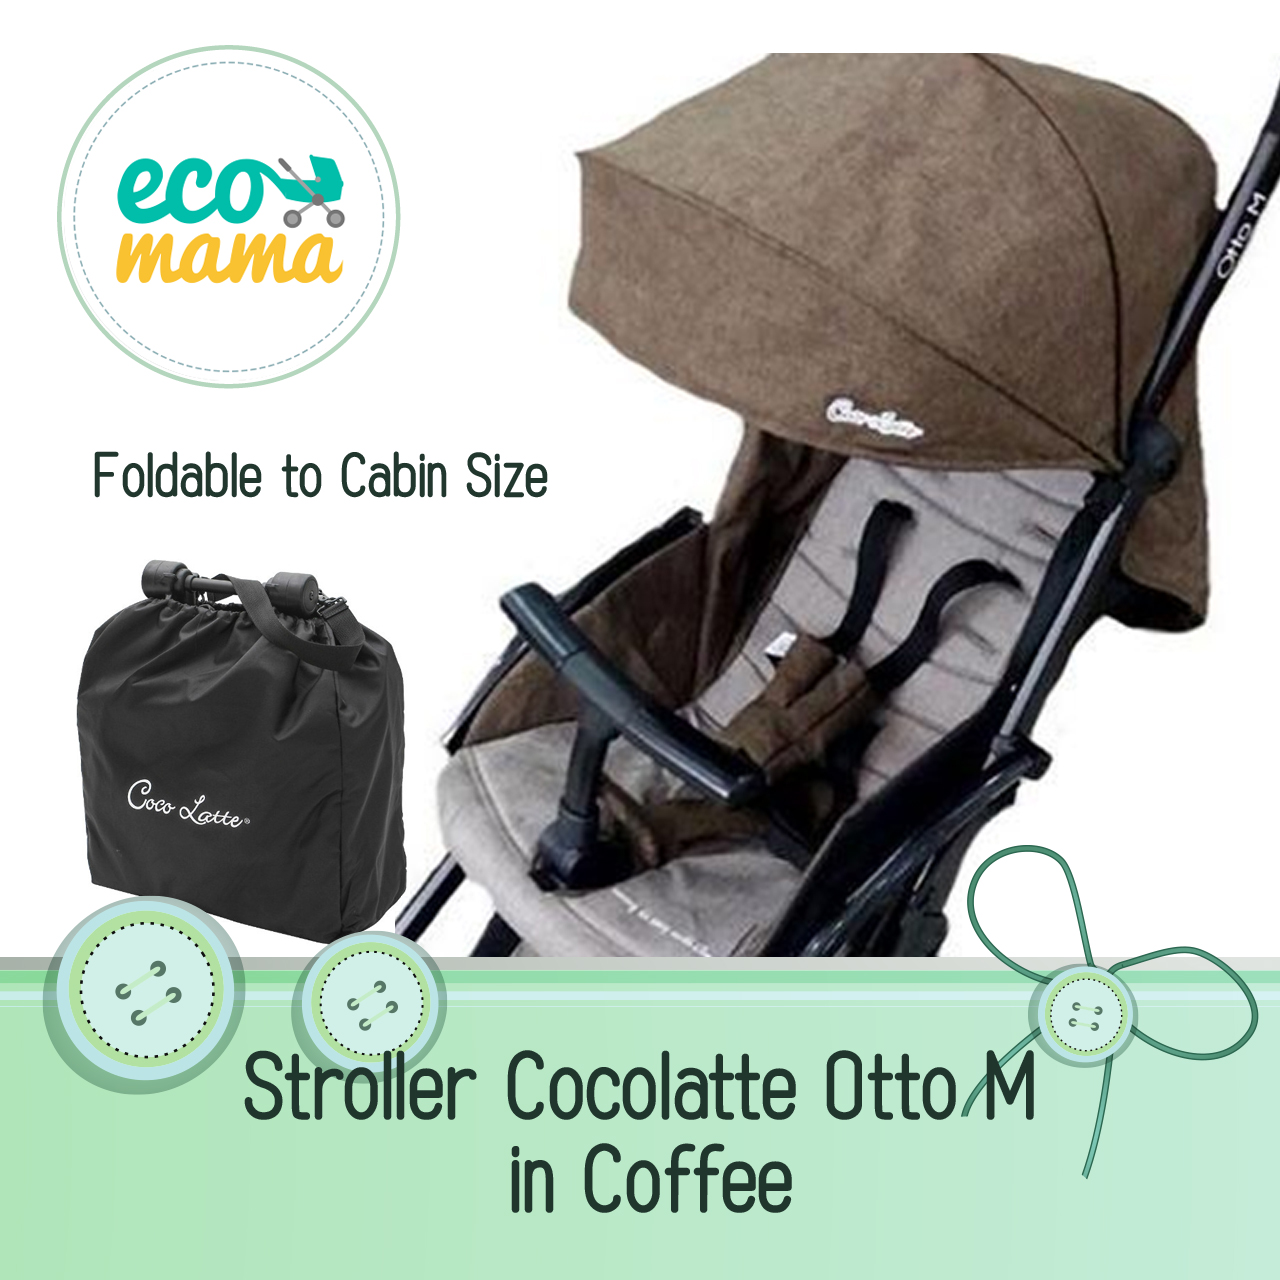 Stroller Cocolatte N73 Otto M Coffee